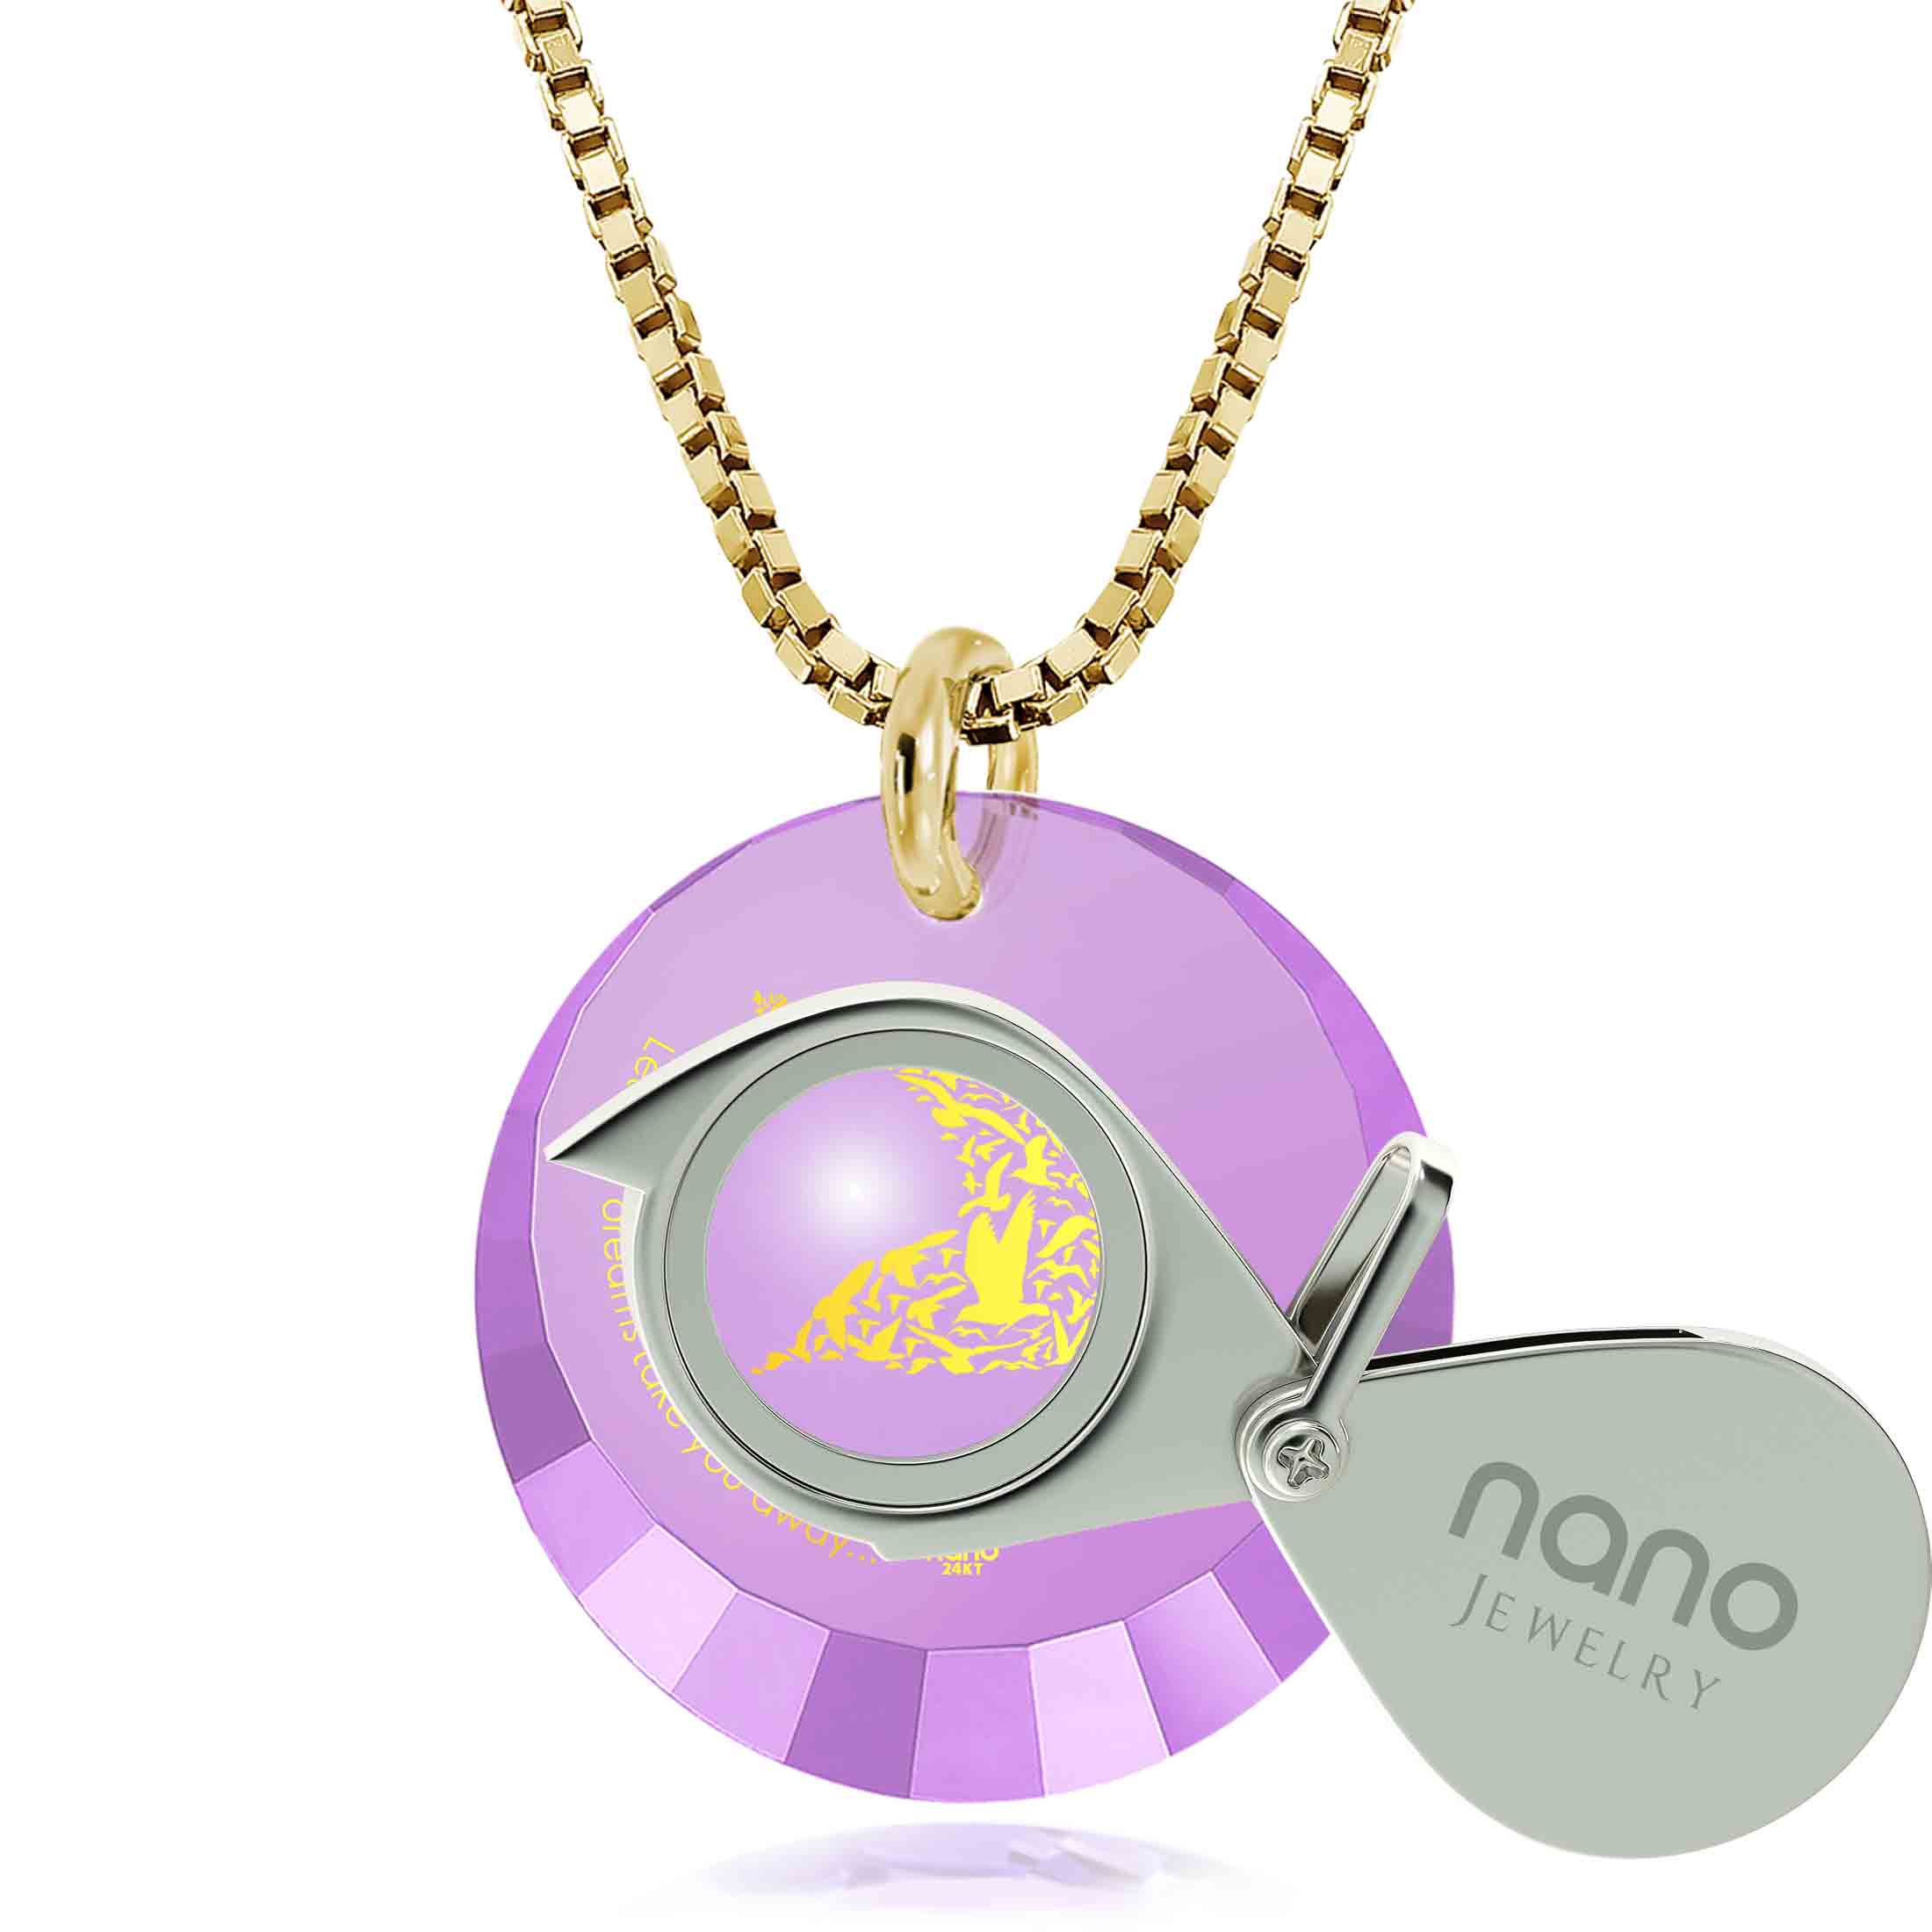 "Inspirational Pendants: ""Let Your Dreams Take You Away"" - Round Facetted CZ 12mm - 14K Gold - Nano Jewelry"